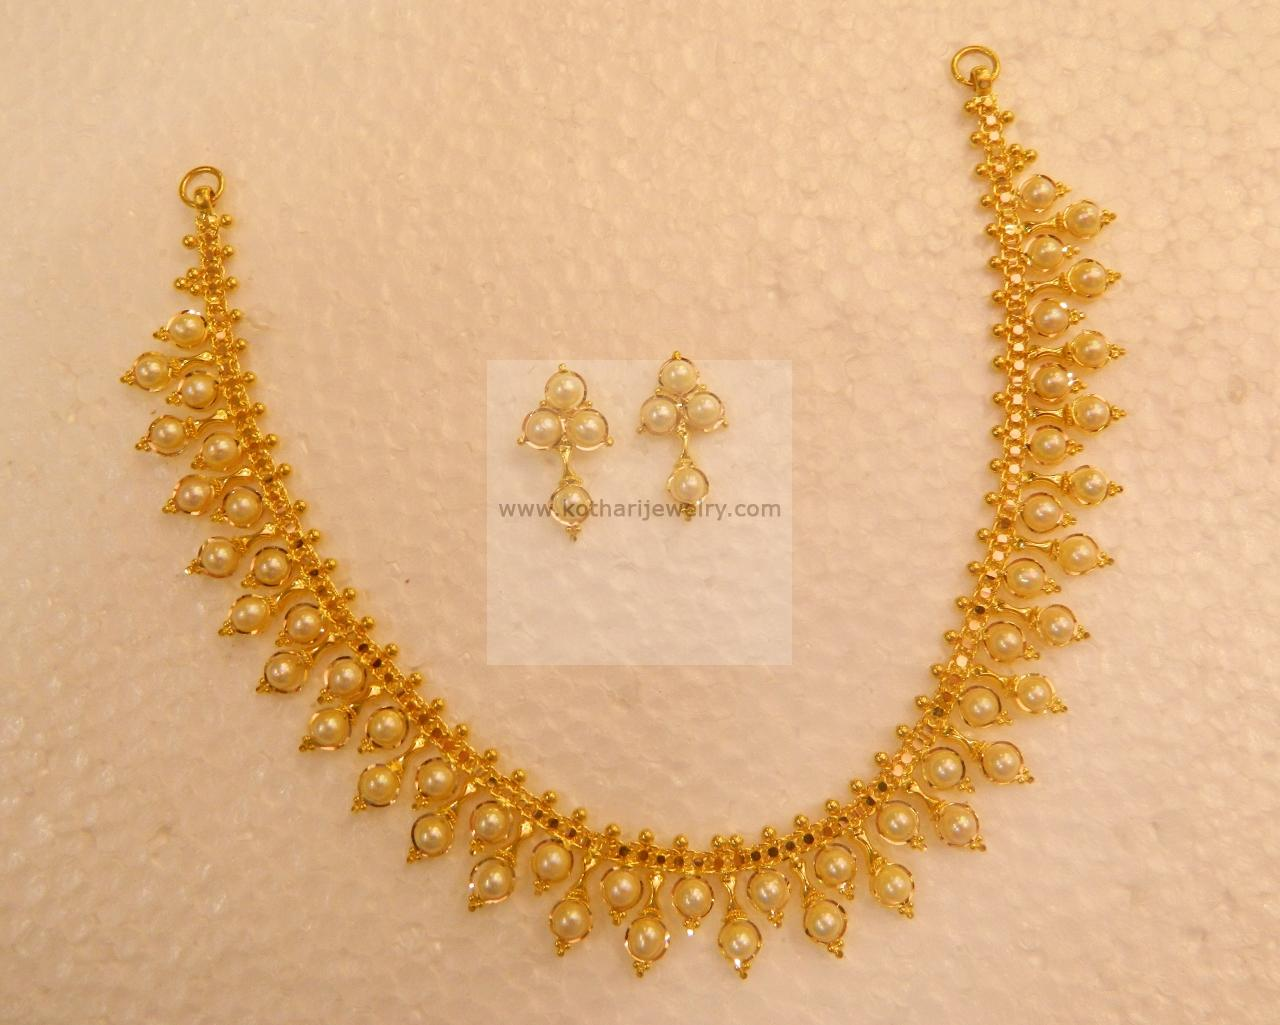 jewellery prem light weight mart fancy south necklace stone india jewels gold